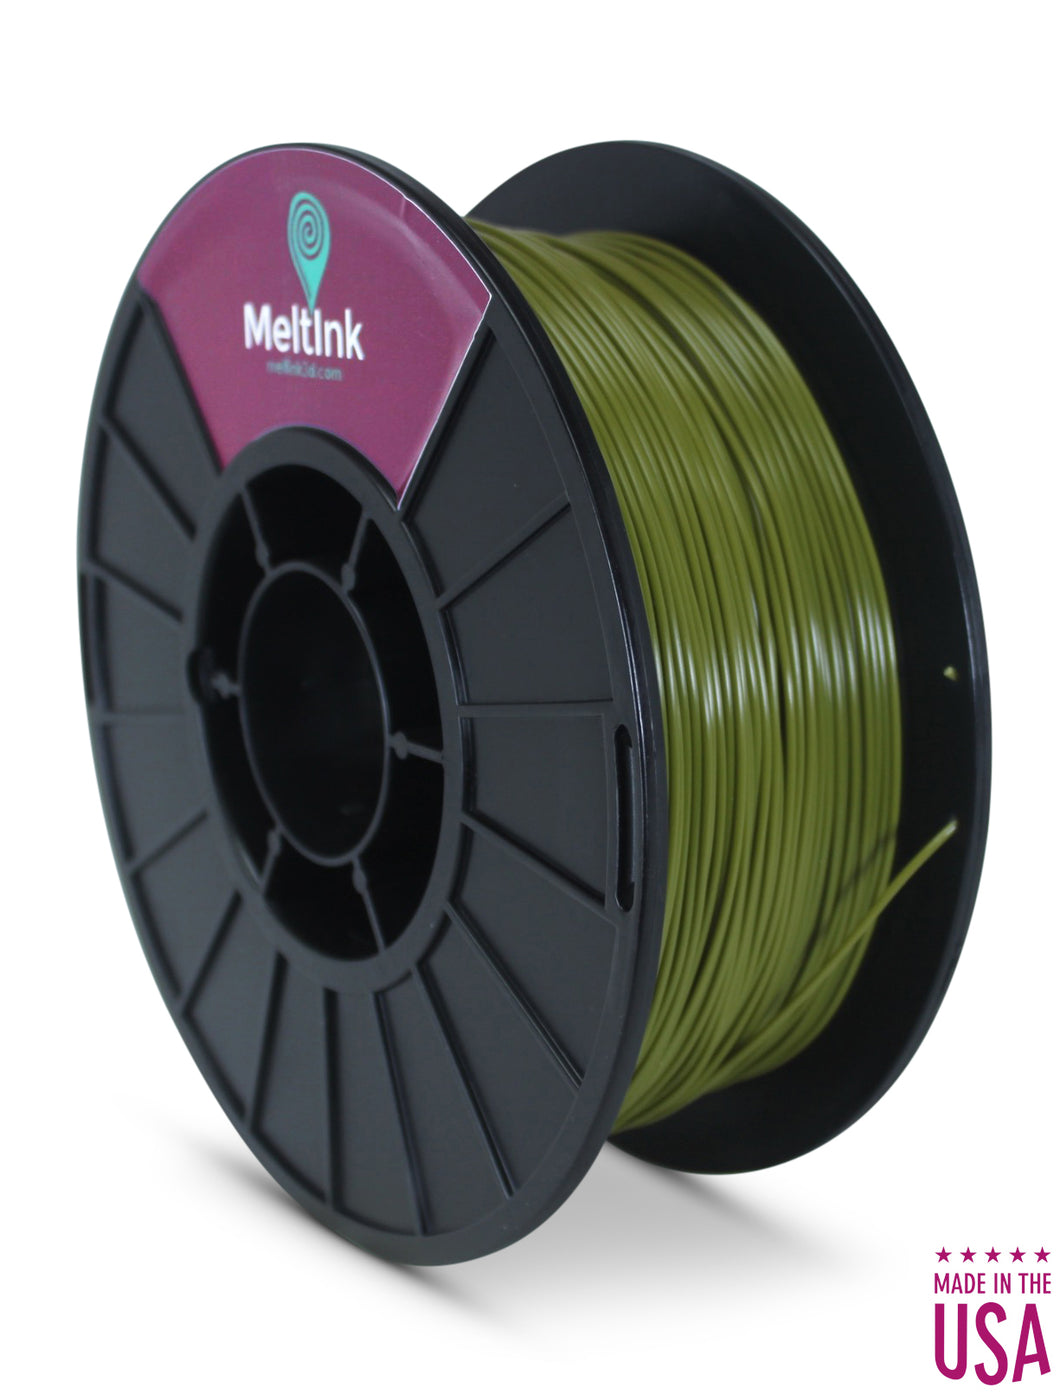 MeltInk3D PLA-1K175CGR05 Command Green PLA 3D Printer Filament Ø 1.75mm, 1Kg, Dimensional Accuracy: ± 0.05mm (Olive)